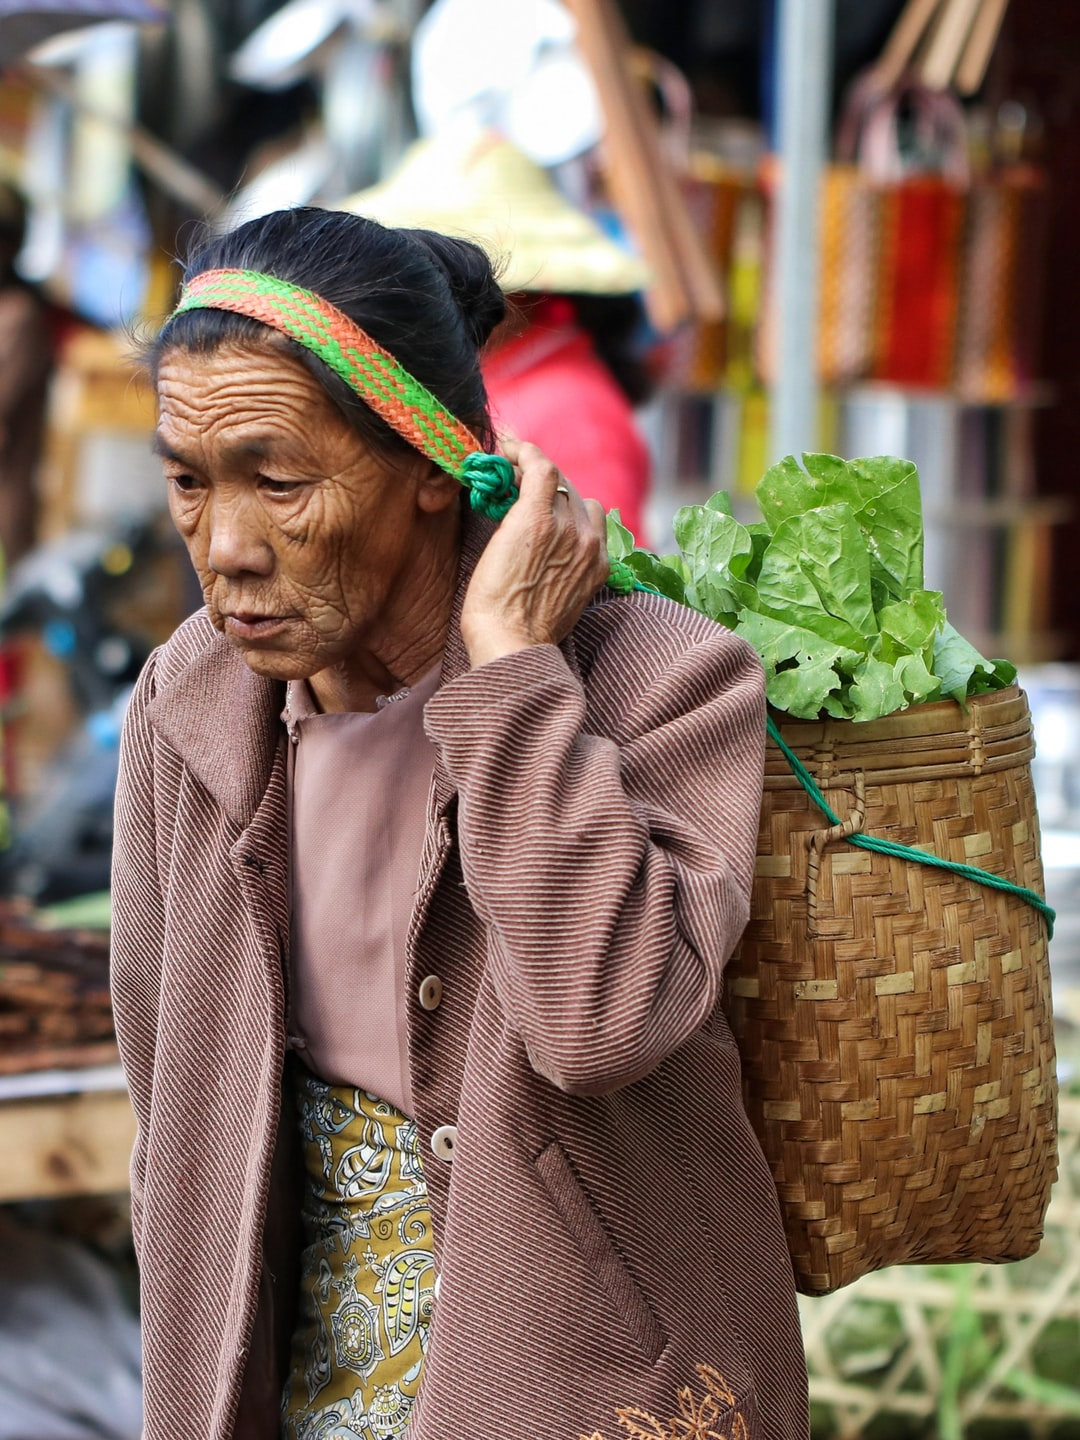 I saw to her shan state in market.